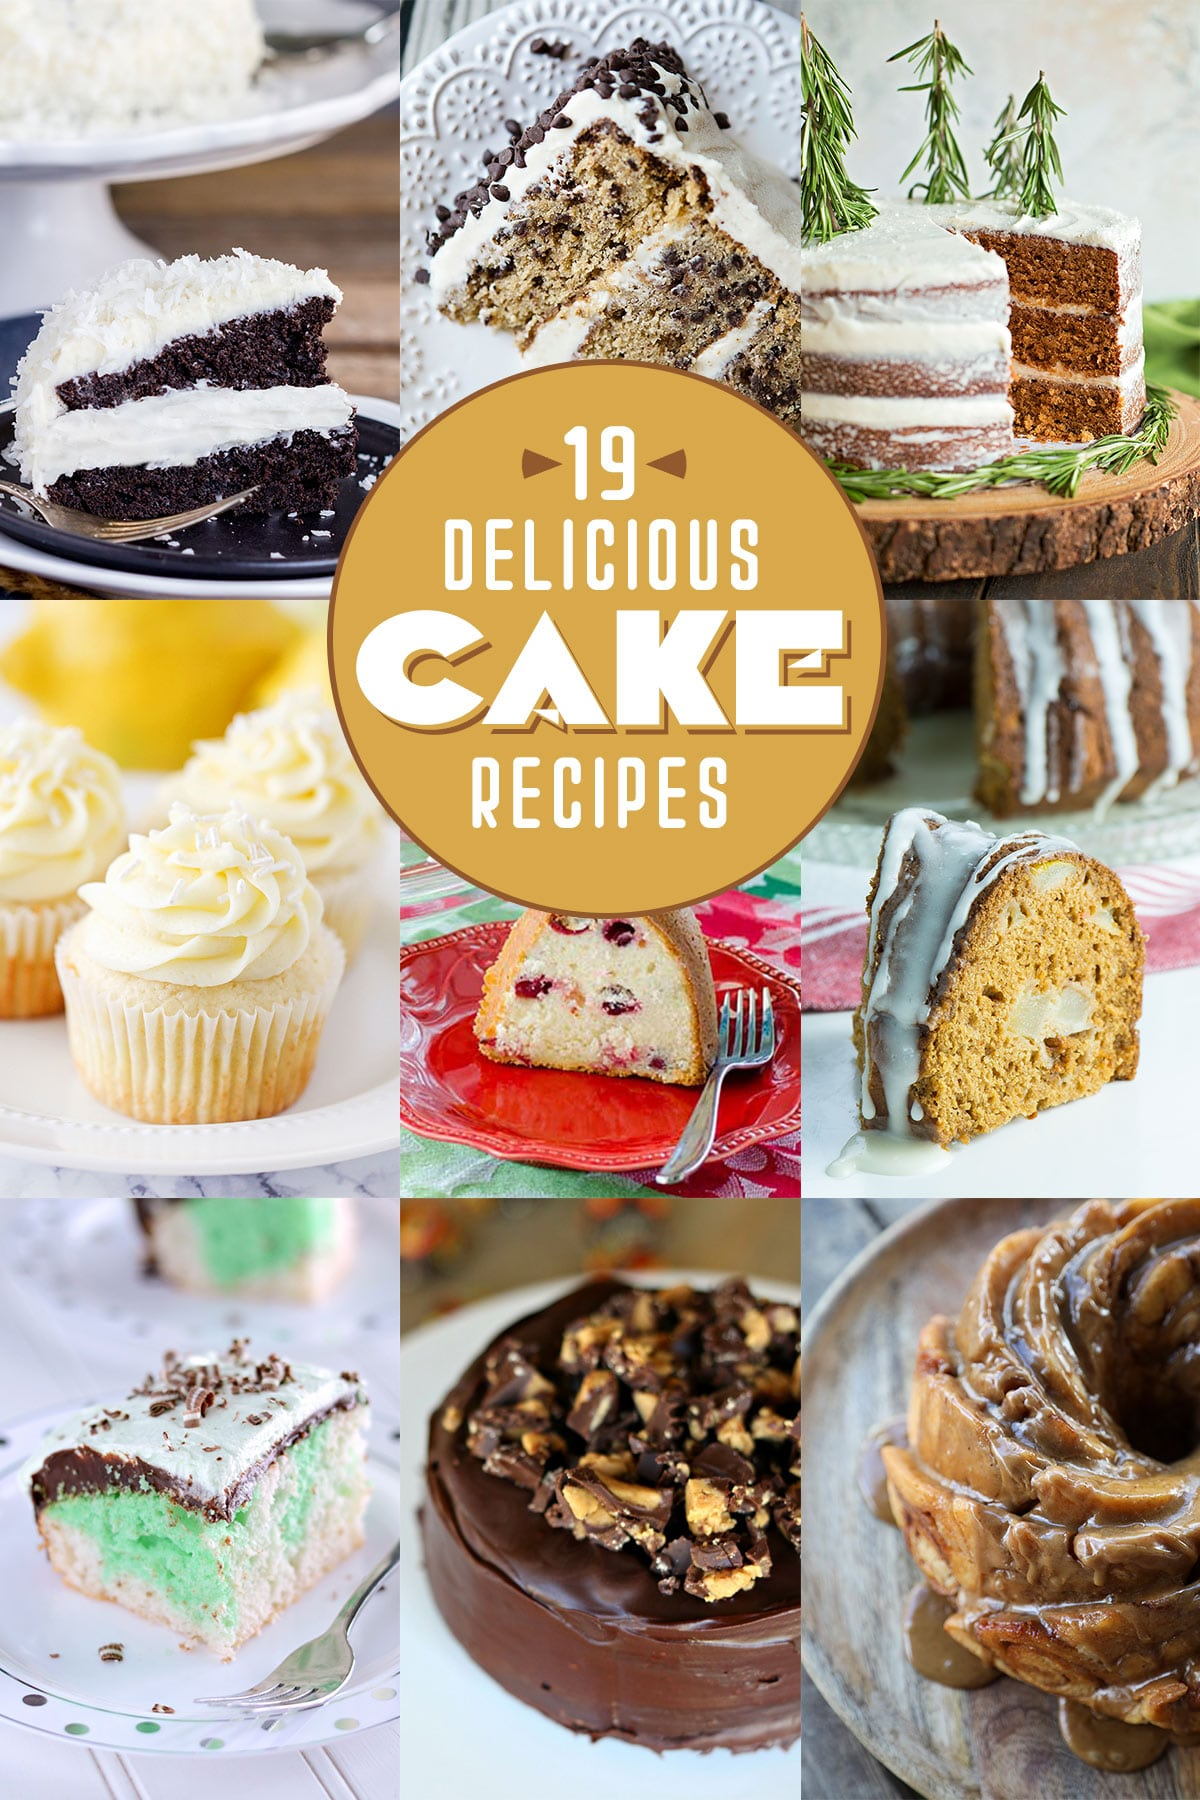 It's National Cake Day and I'm celebrating with a bunch of other awesome food bloggers to share over 19 delicious cake recipes!